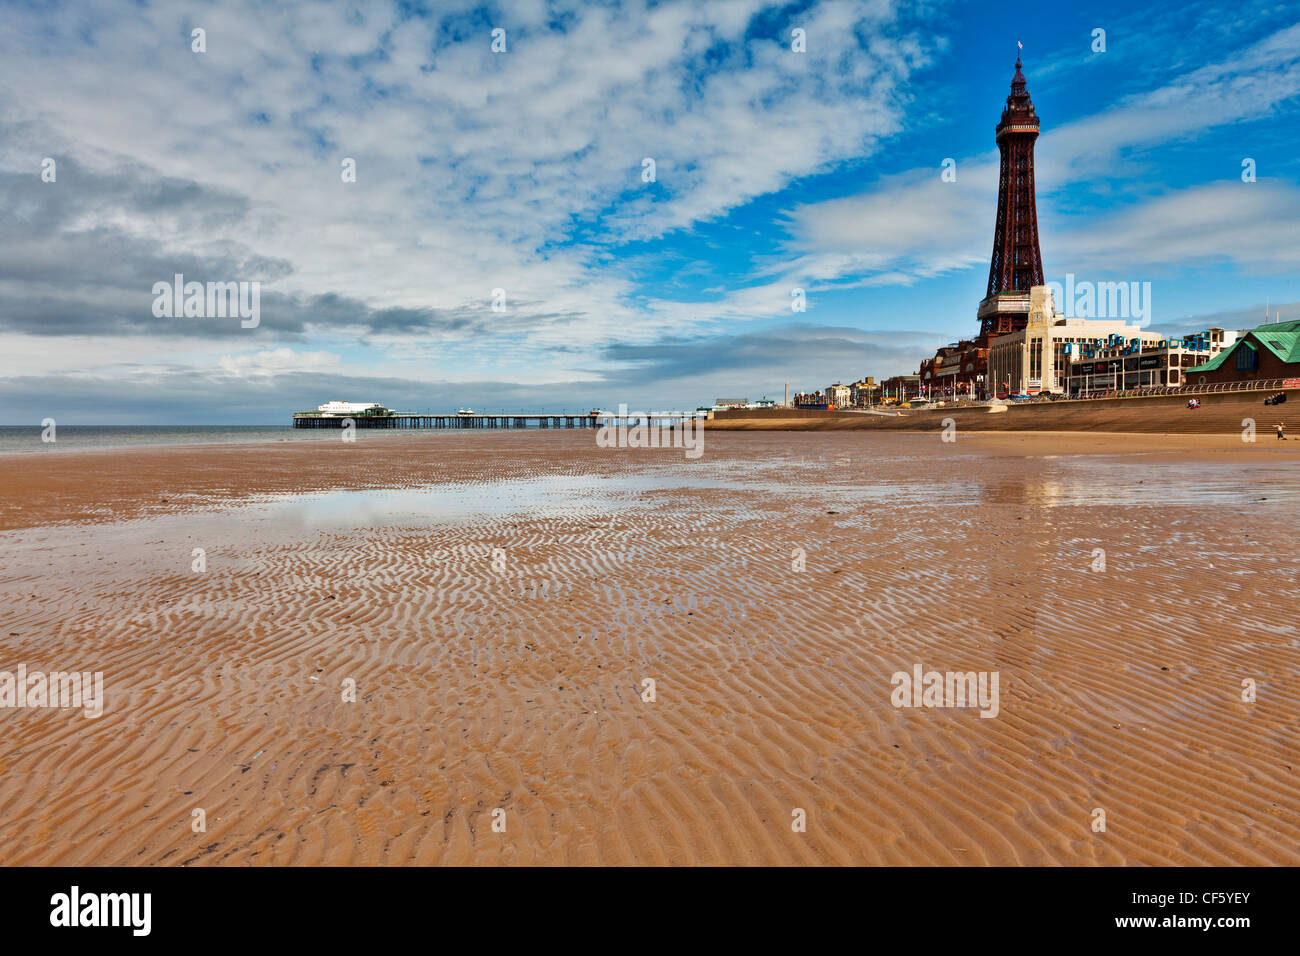 A view across the sandy beach towards Blackpool tower and North Pier on a summers day. - Stock Image